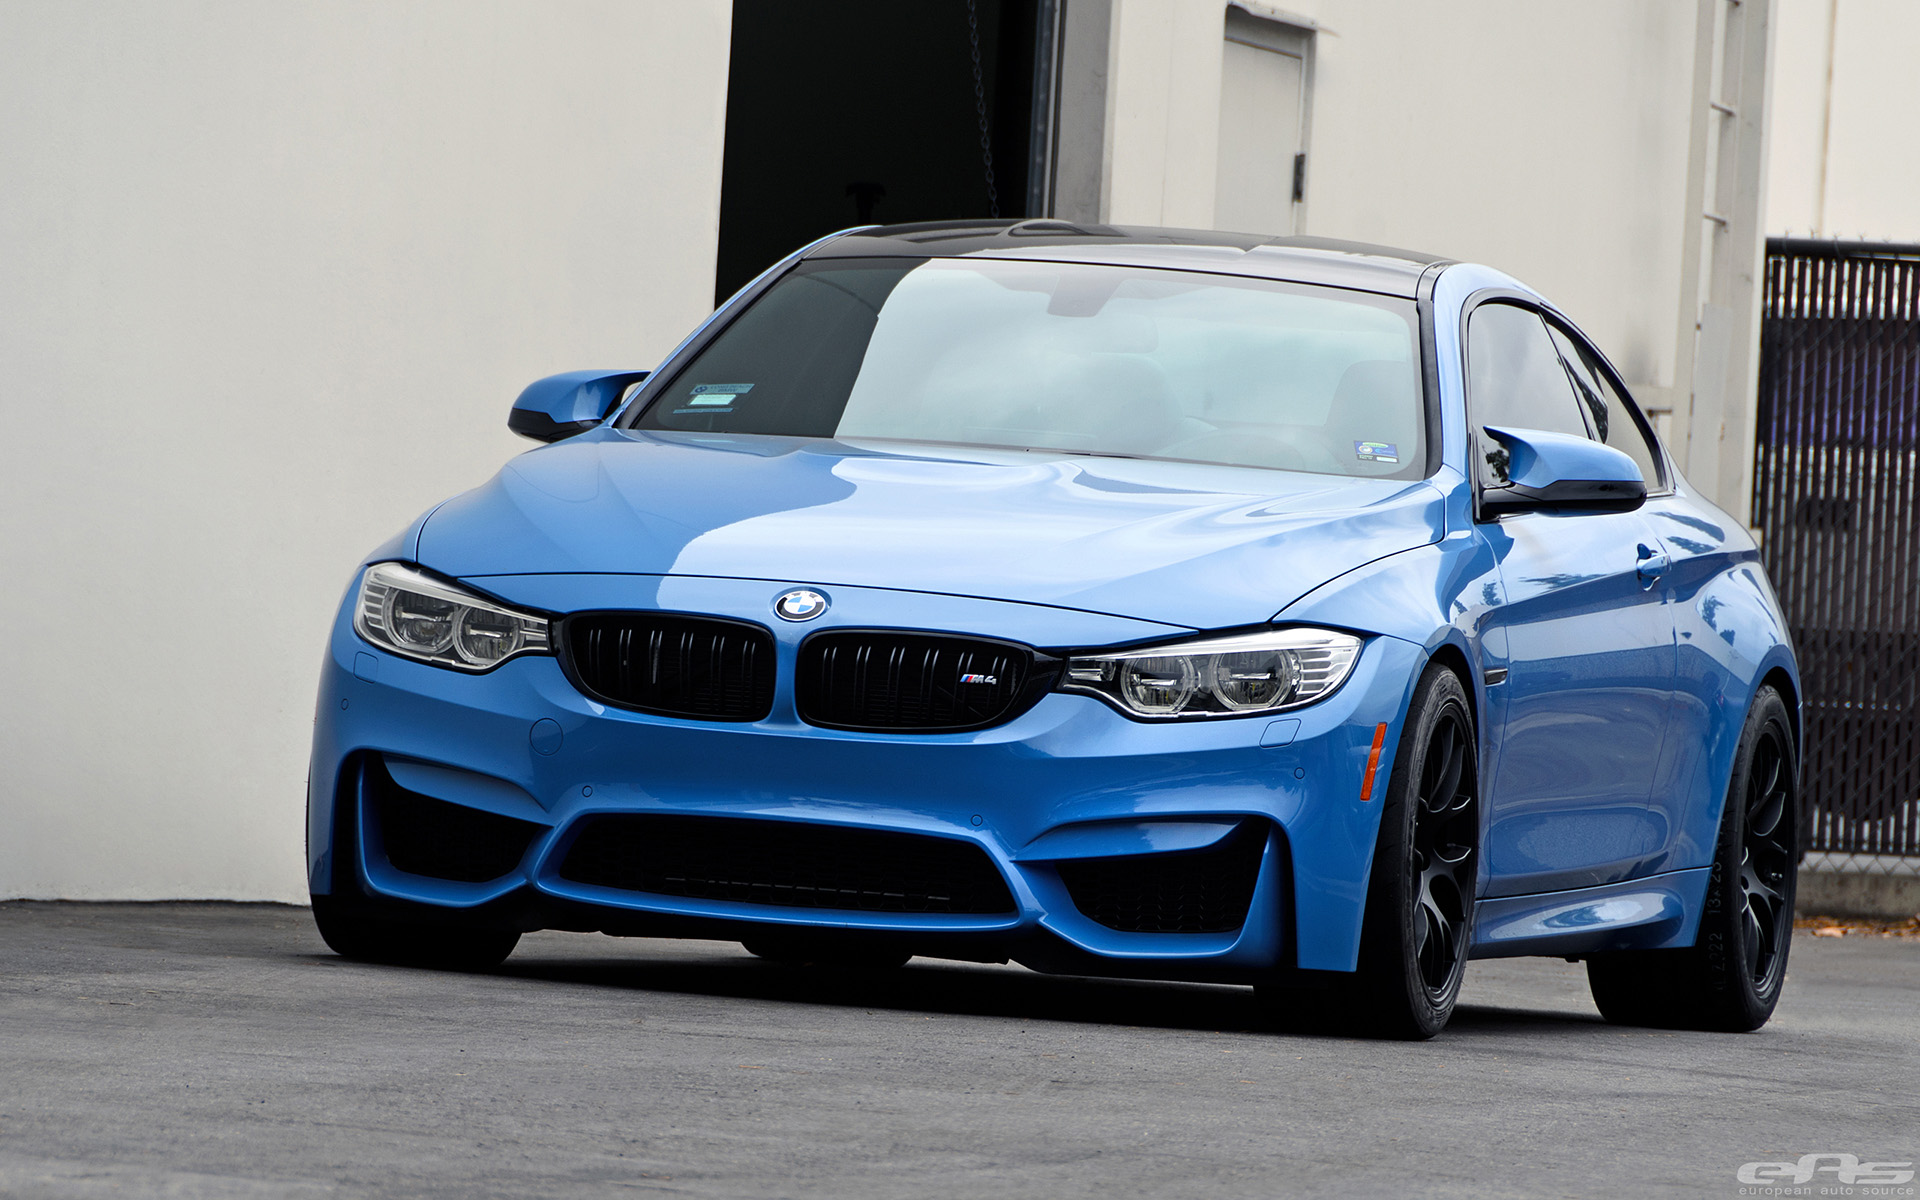 yas-marina-blue-bmw-f82-m4-with-cosmetic-upgrades-51